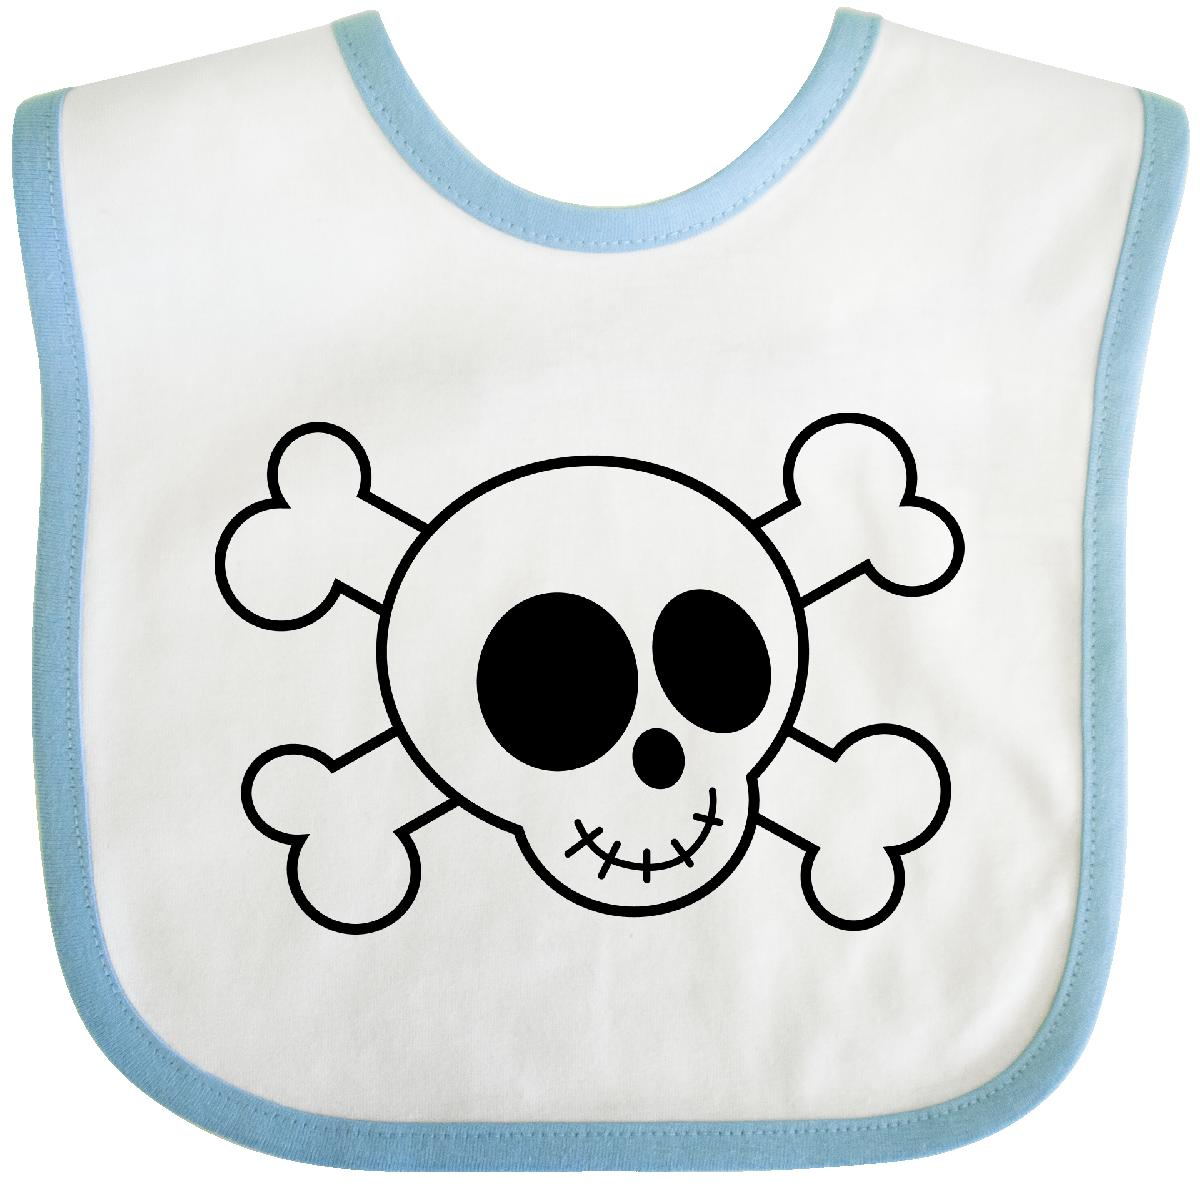 Inktastic Fun Skull And Crossbones Baby Bib pirate funny kids gift clothing infant hws